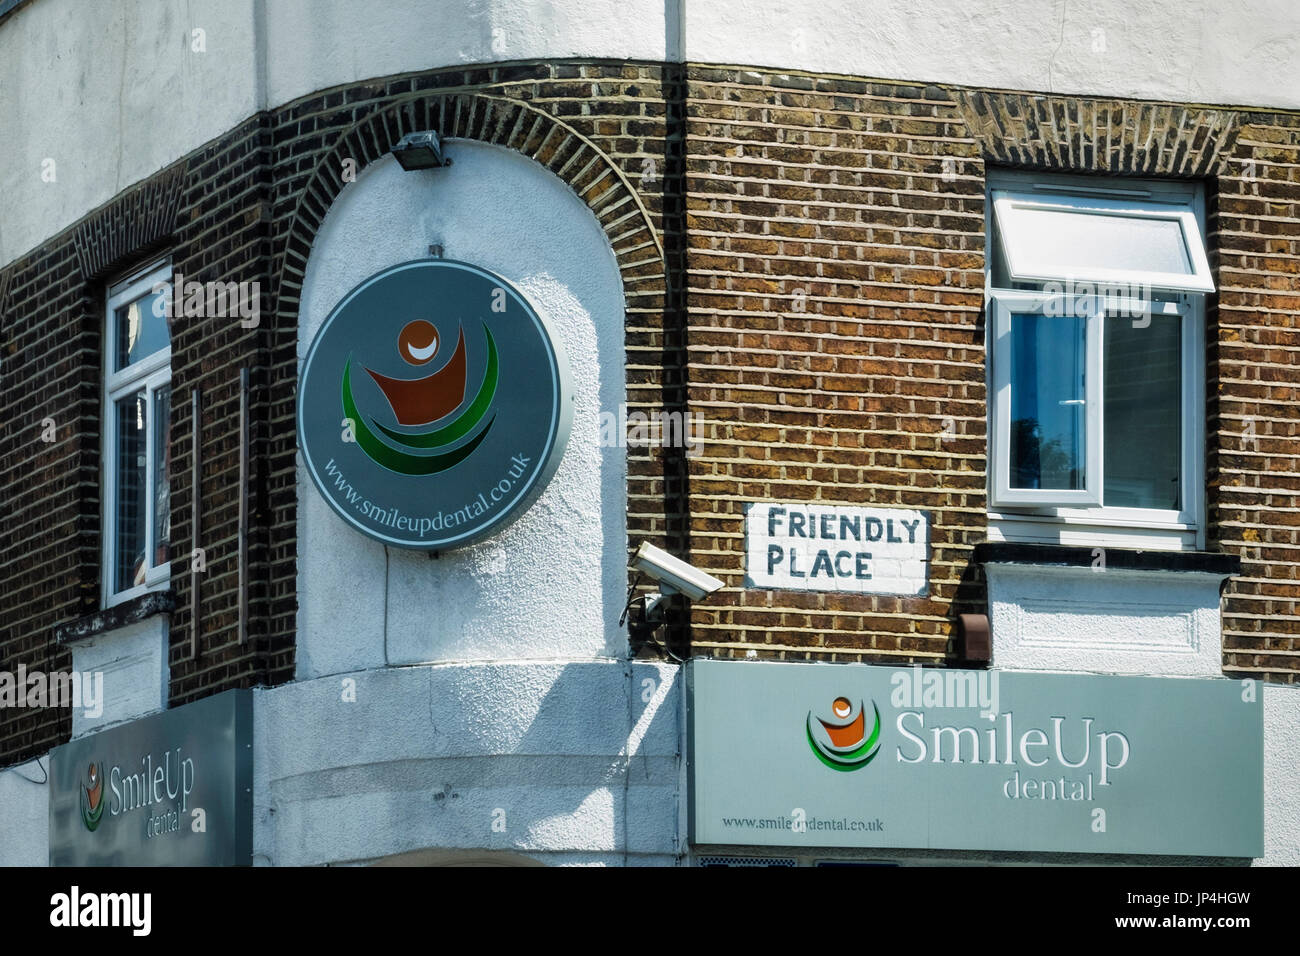 Smile Up Dental Practice in aptly names street - Friendly Place. Humour,Humorous,funny,amusing - Stock Image